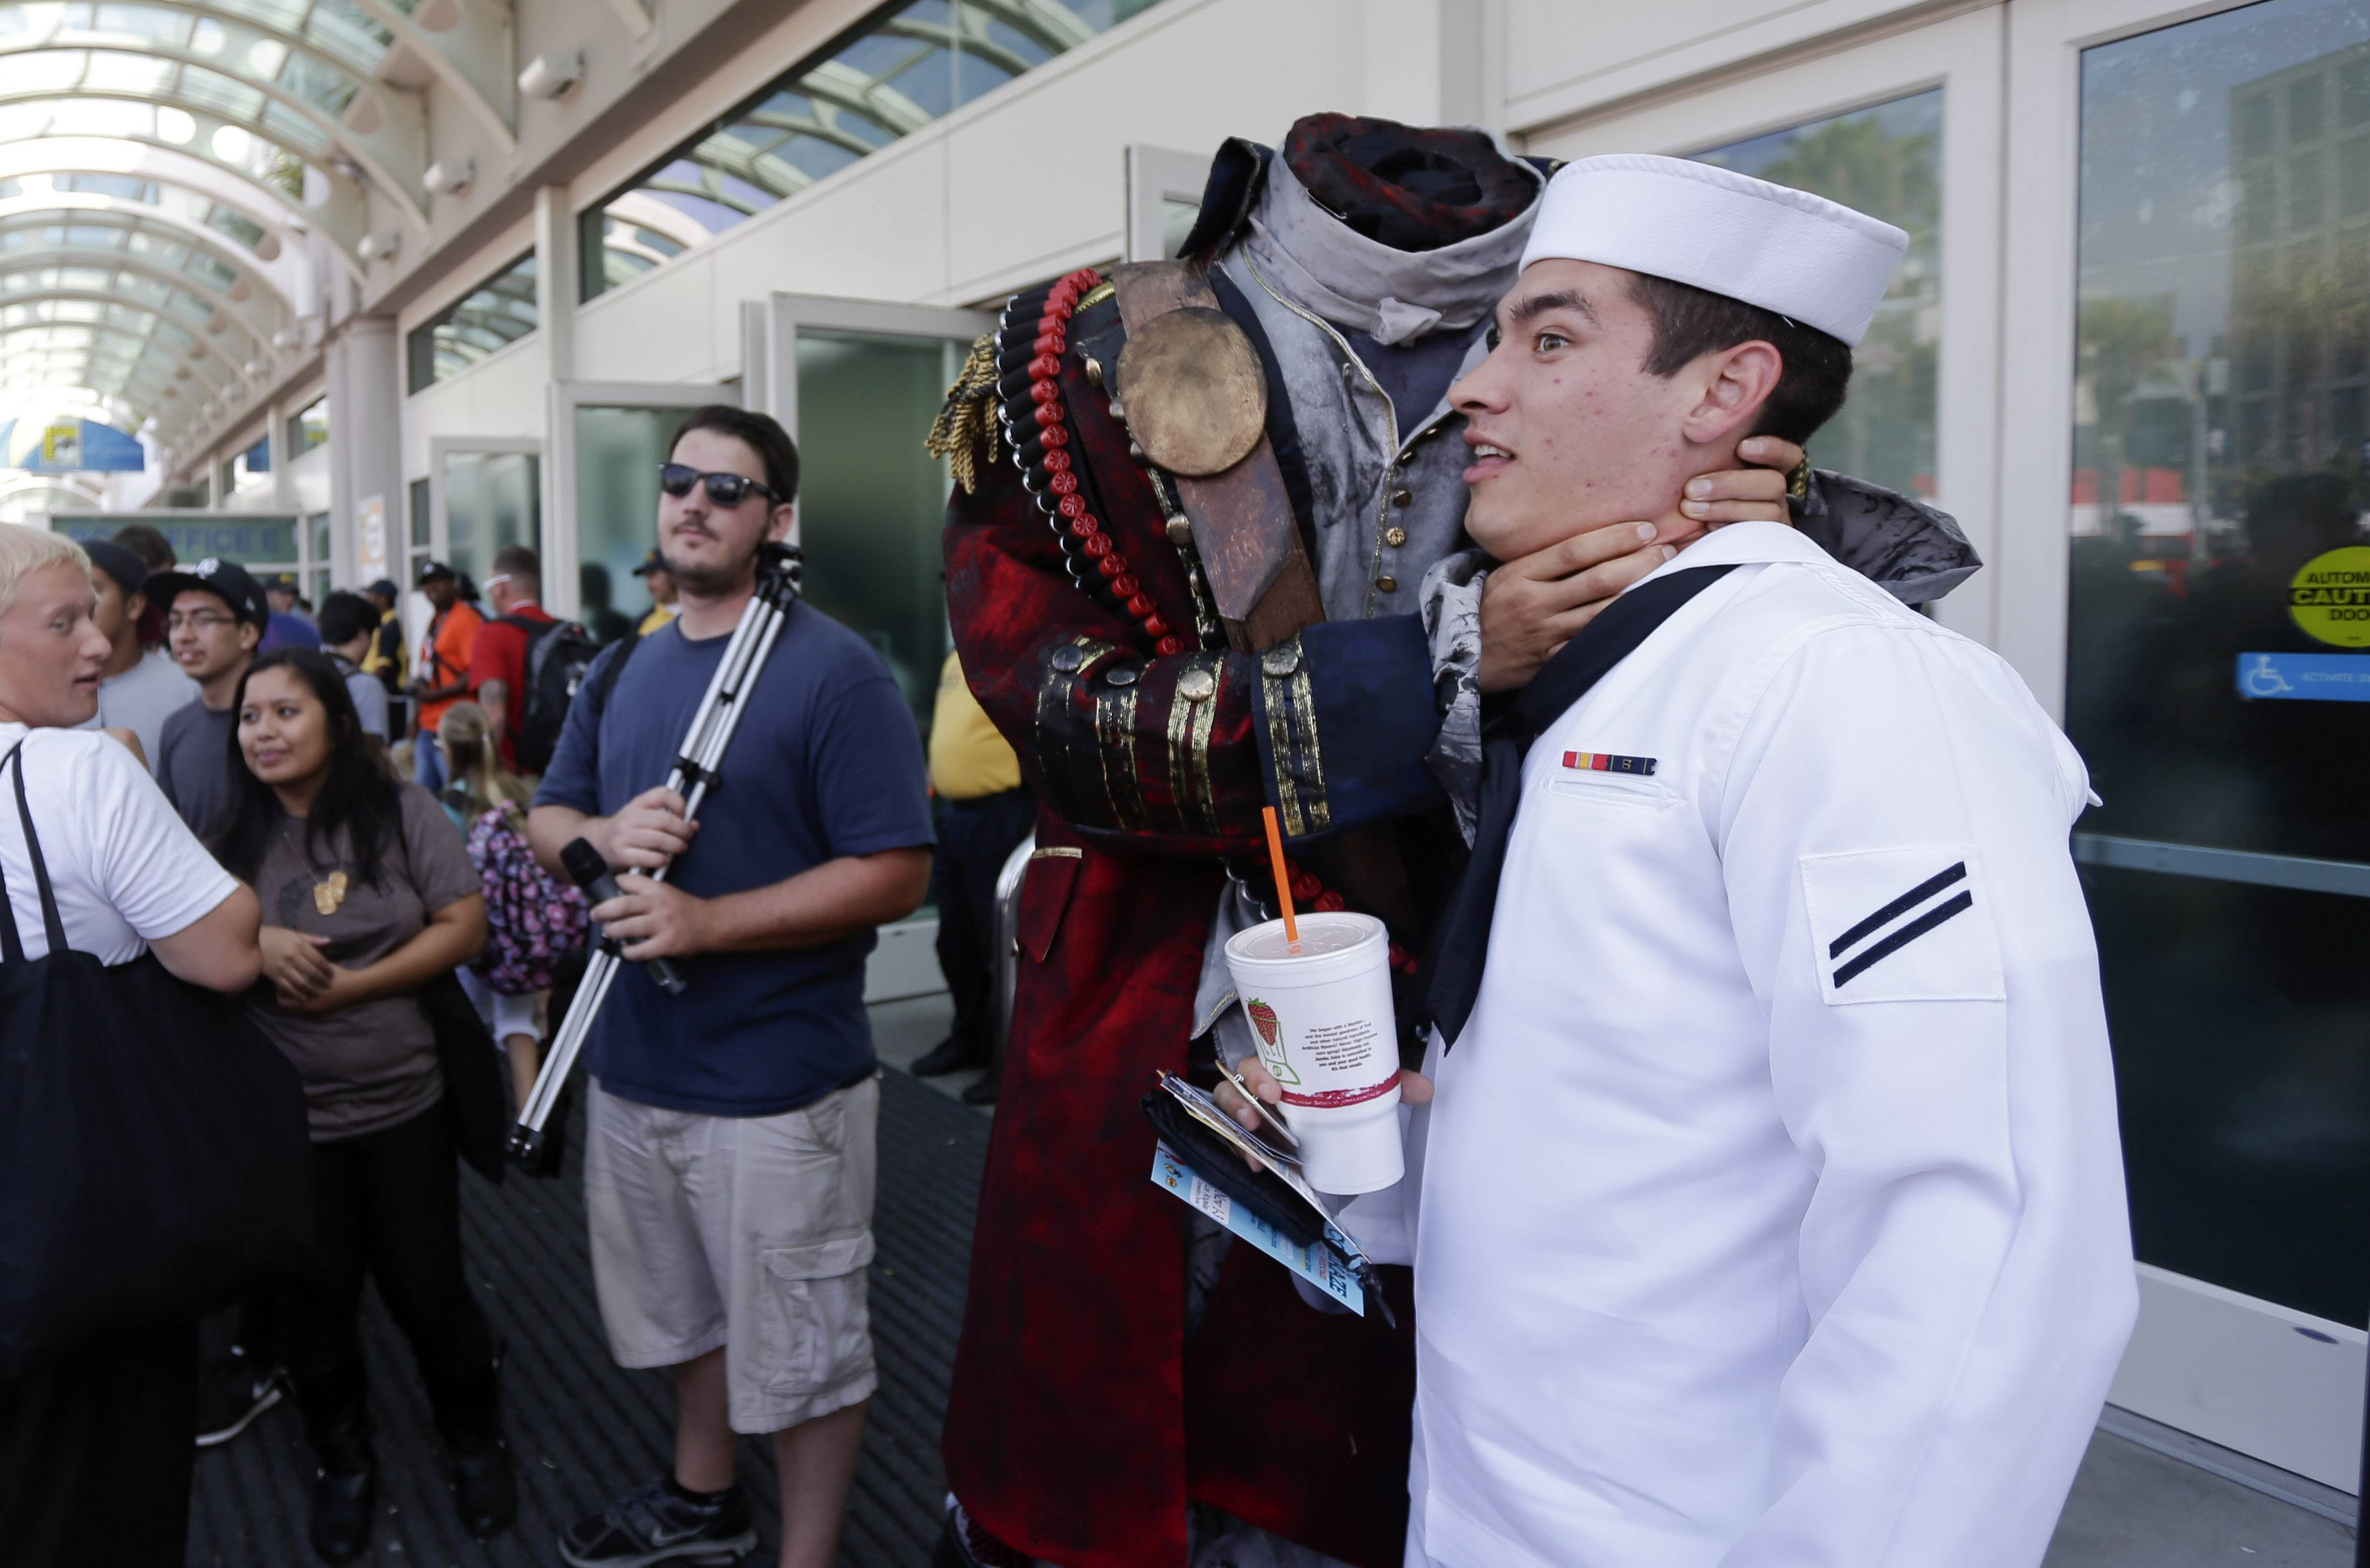 Navy Mineman Bradley Allred jokes as he has his picture taken with a headless character during Comic-Con, in San Diego last year.